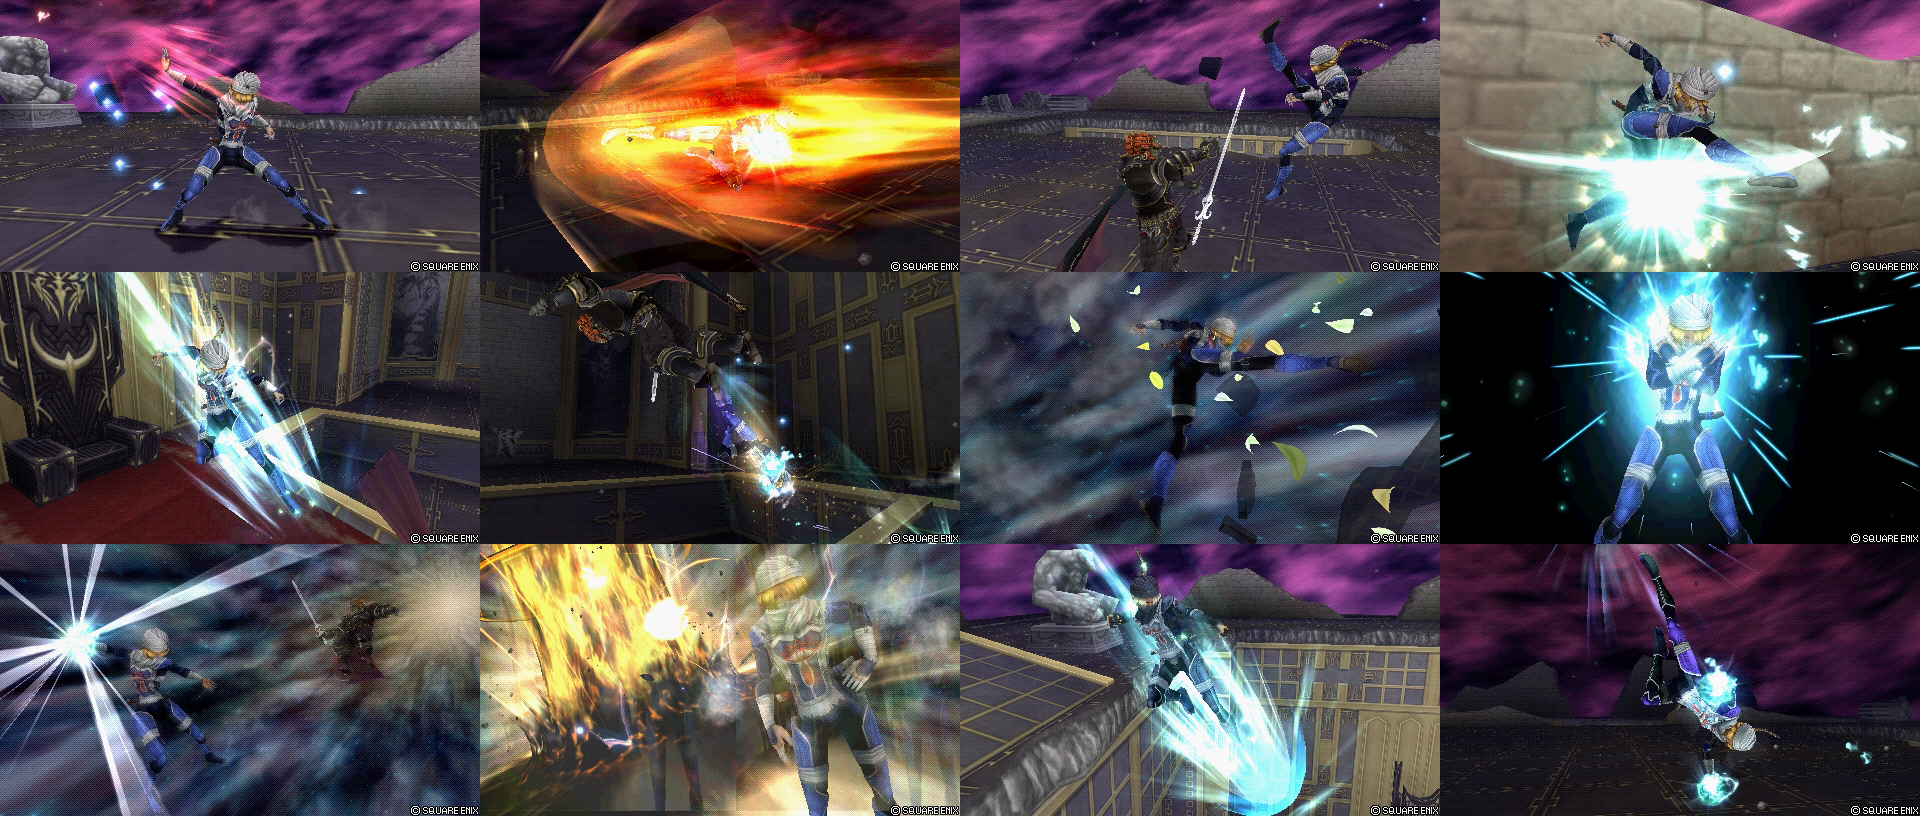 dissidia_012_mods__sheik__smash_3ds__by_